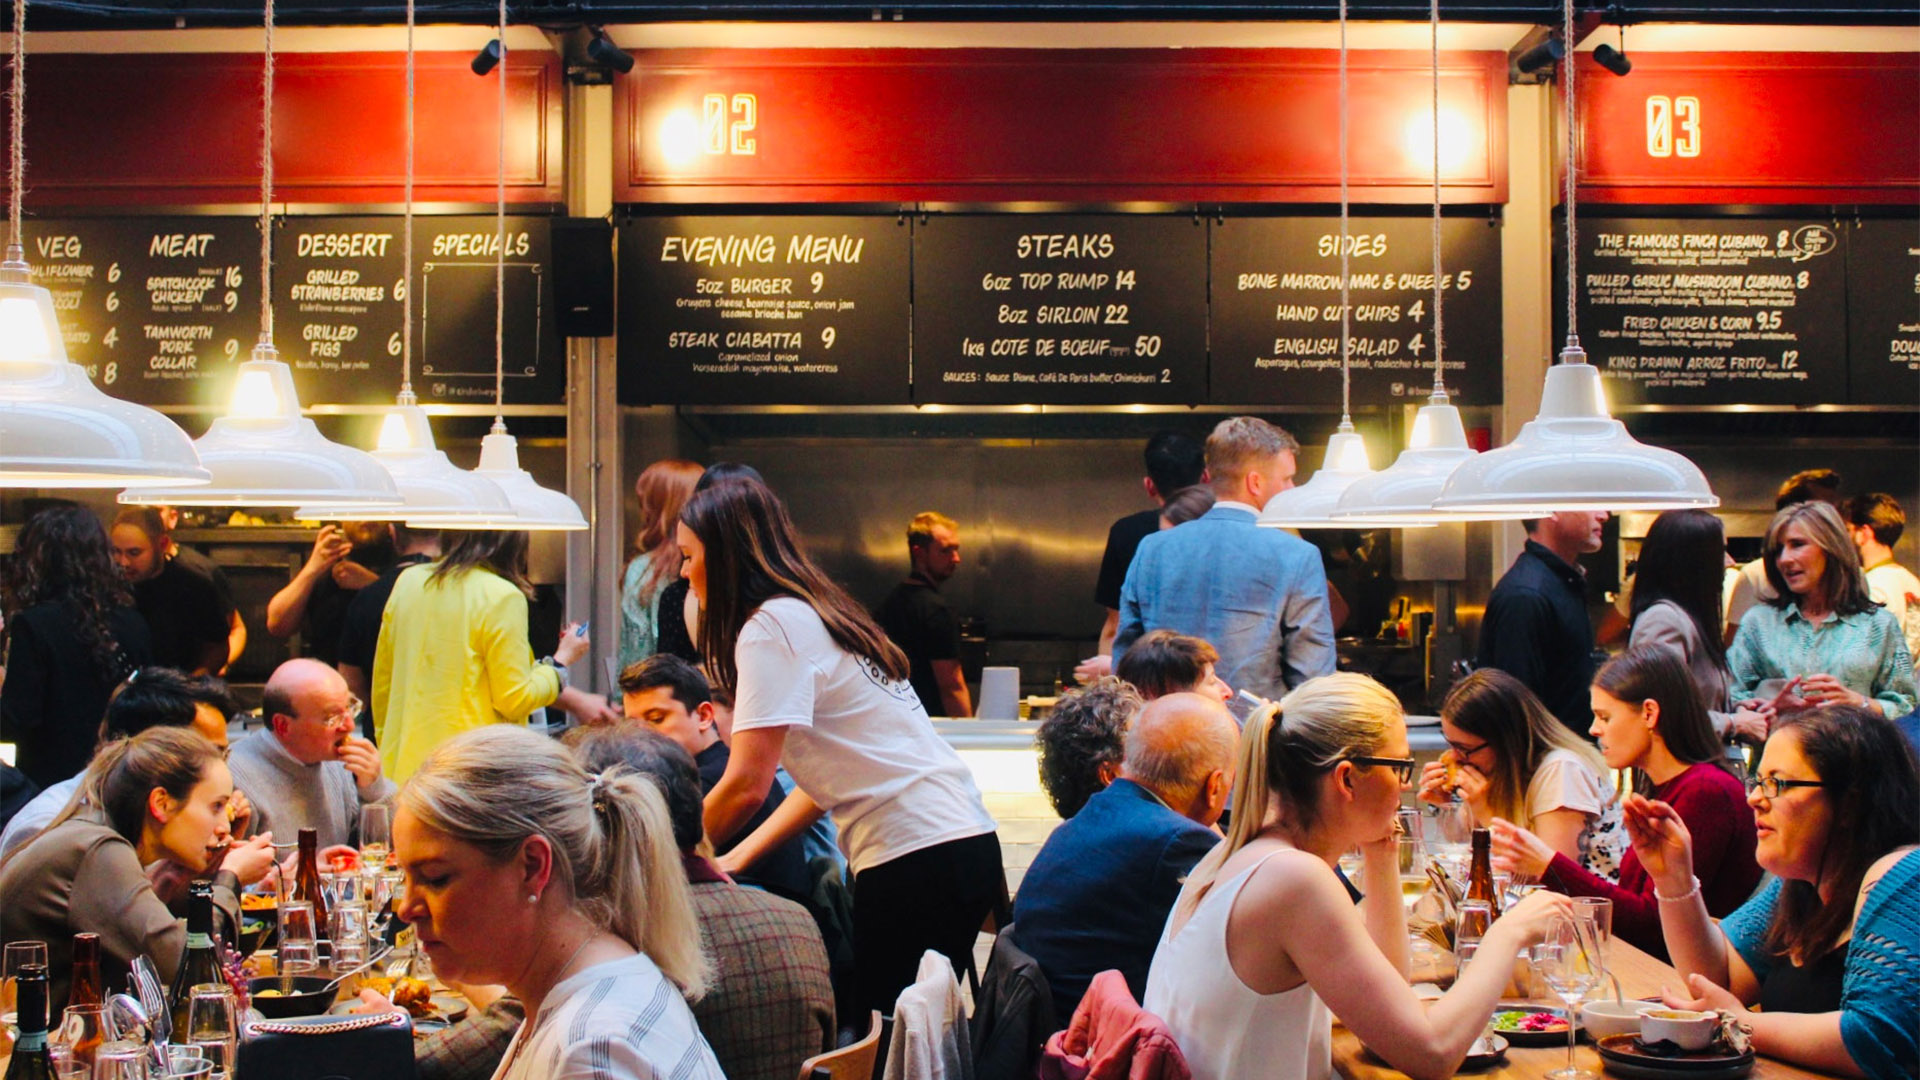 Duke Street Market to offer 20% off food and drinks every Wednesday throughout September and October